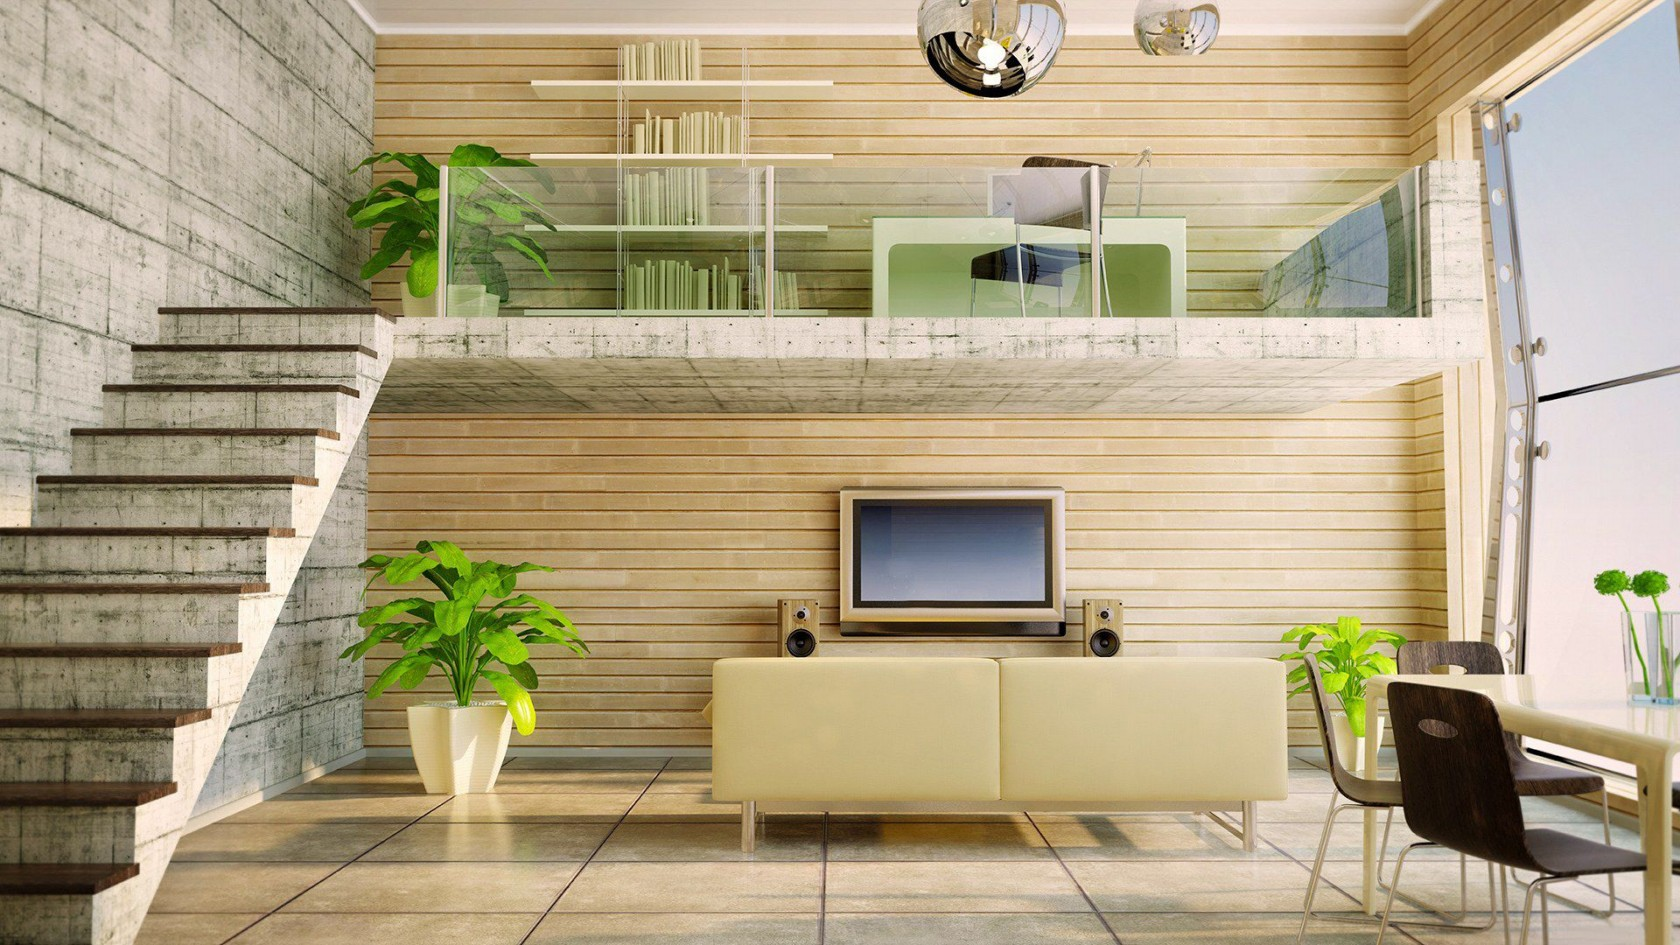 first choice insurance and realty home interior design hd wallpaperjpg - Home Interior Design